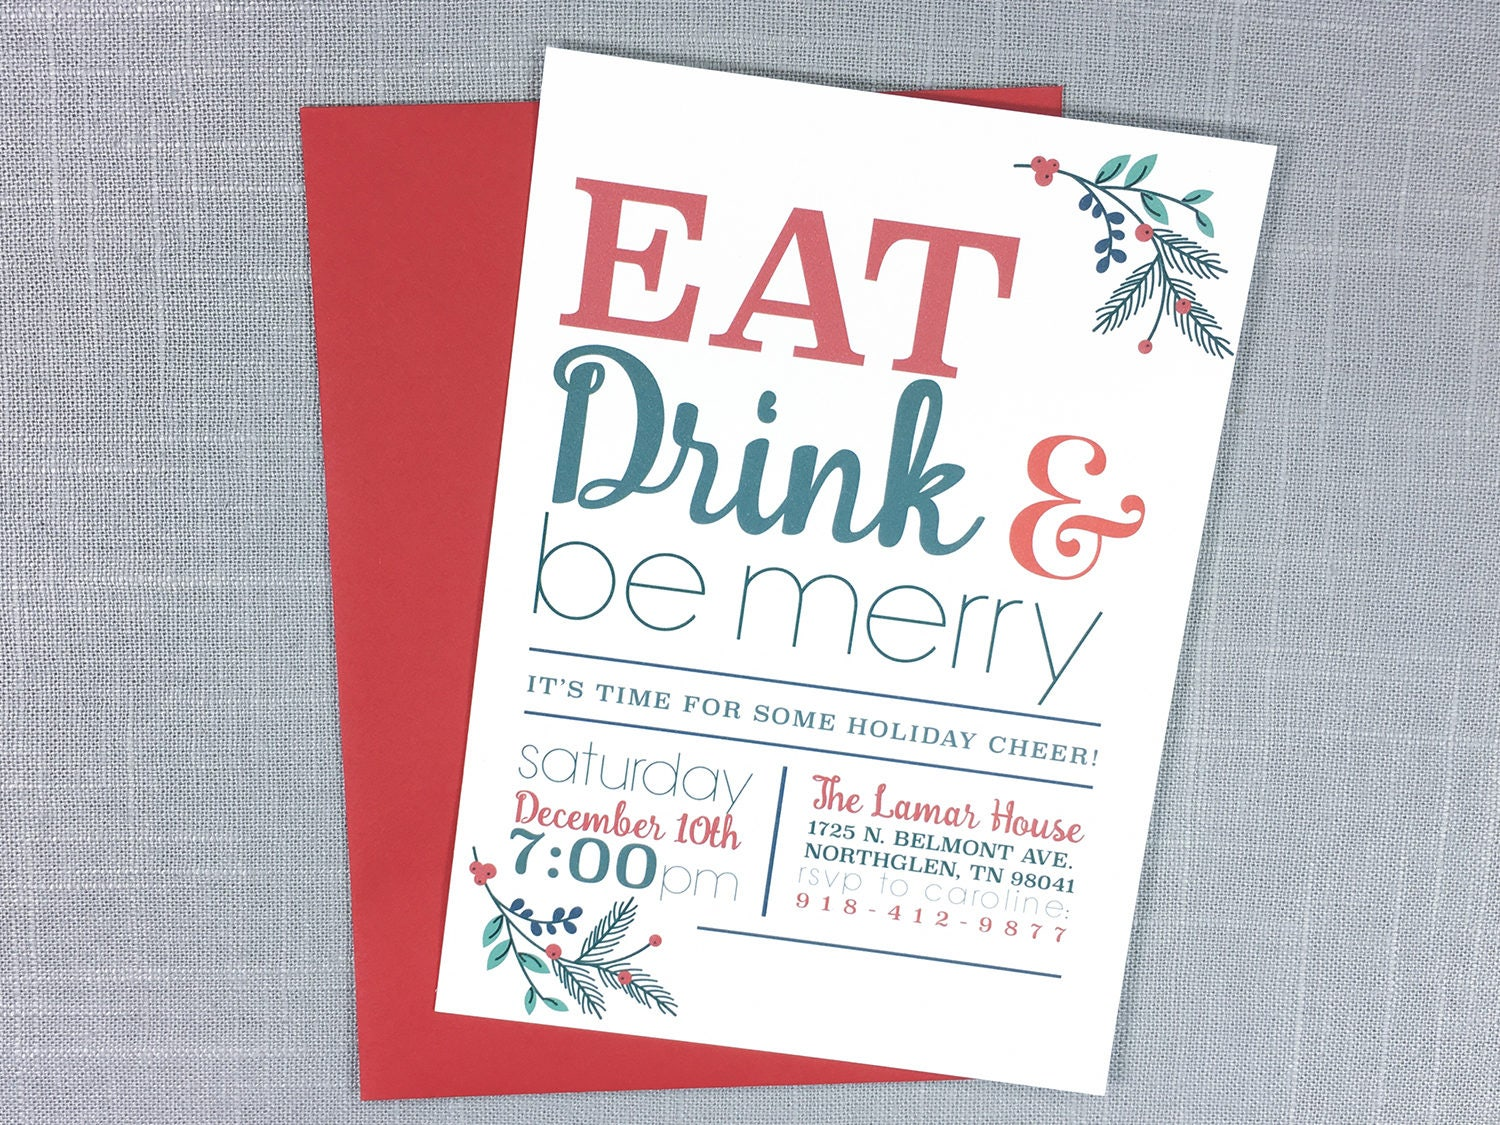 Christmas Party Invitations, Holiday Cheer Invitations, Holiday ...